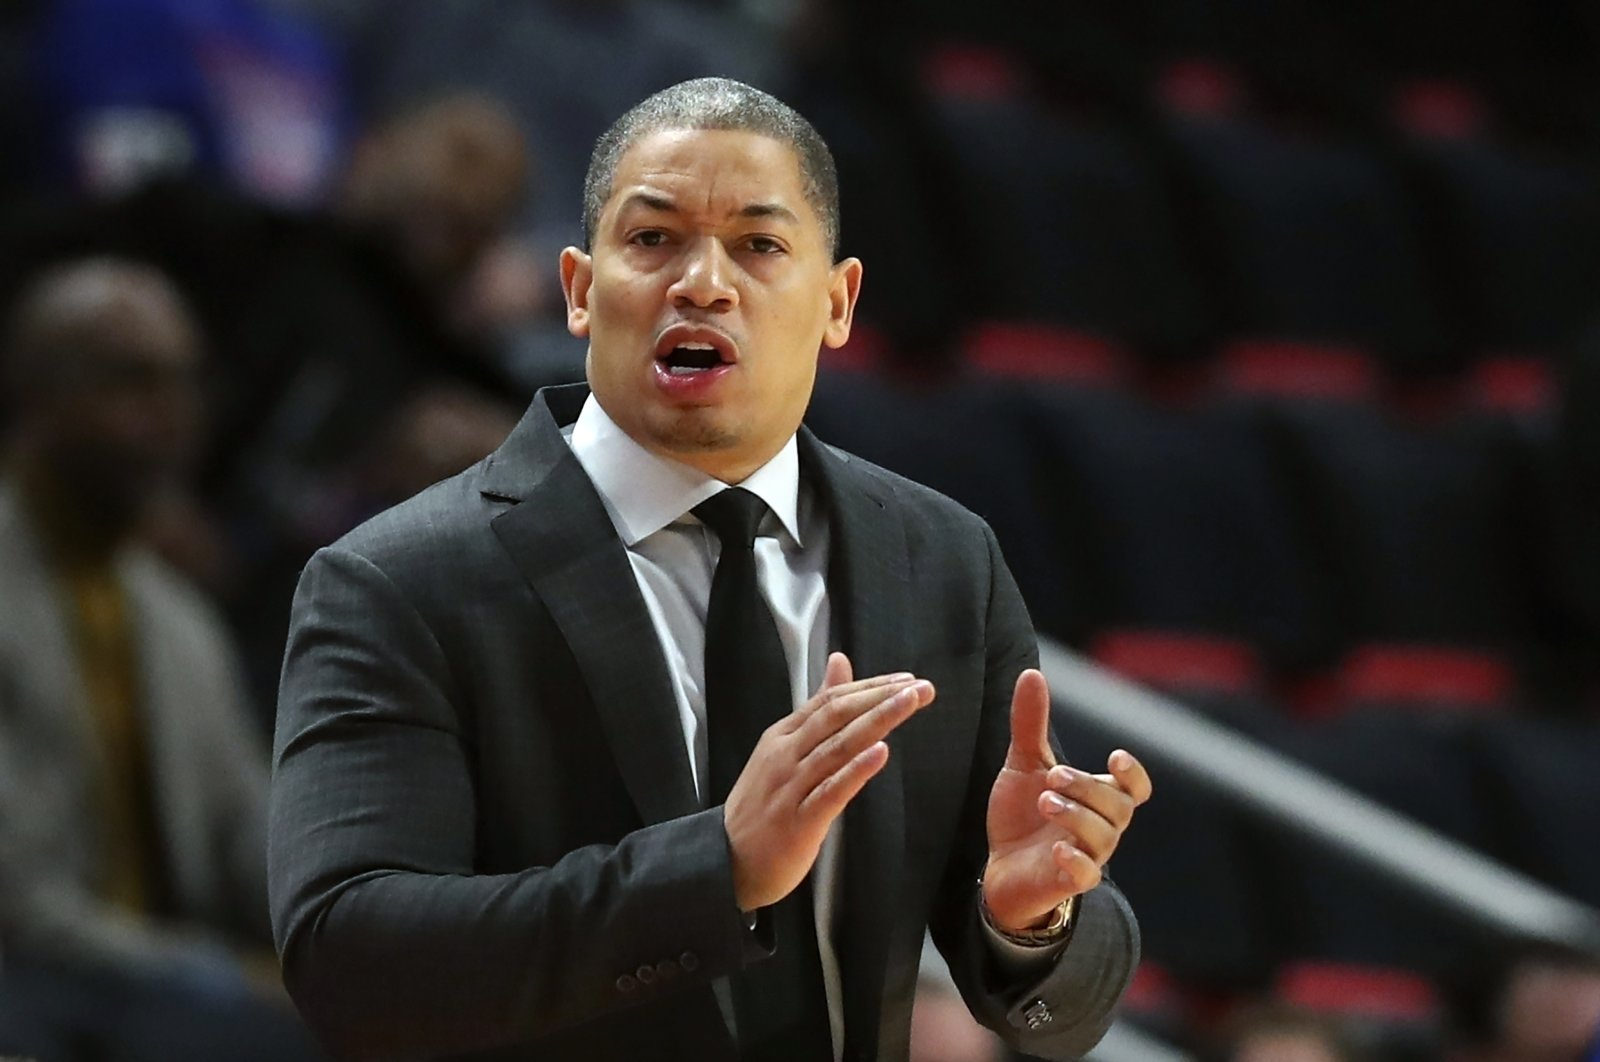 Tyronn Lue gestures during an NBA match between Detroit Pistons and Cleveland Cavaliers, in Detroit, Mich., U.S., Oct. 25, 2018. (AP Photo)